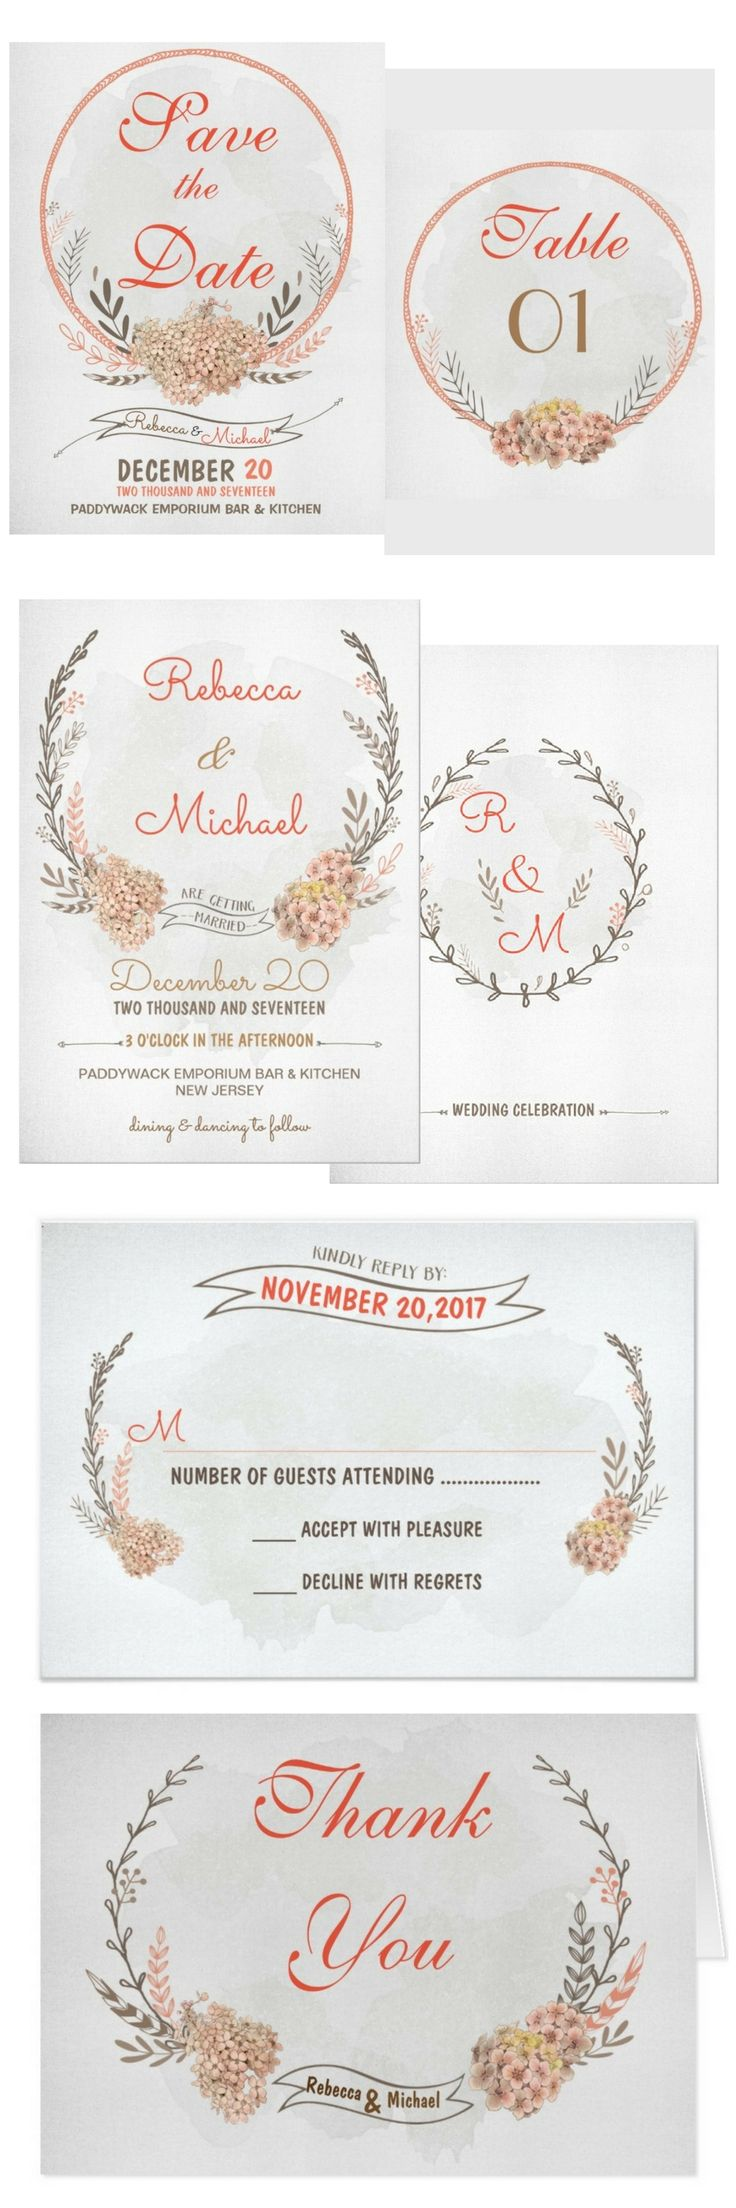 Rustic wedding invitation | Vintage | Romantic | Save the Date | Floral | Wreath | Watercolor | Response Card |